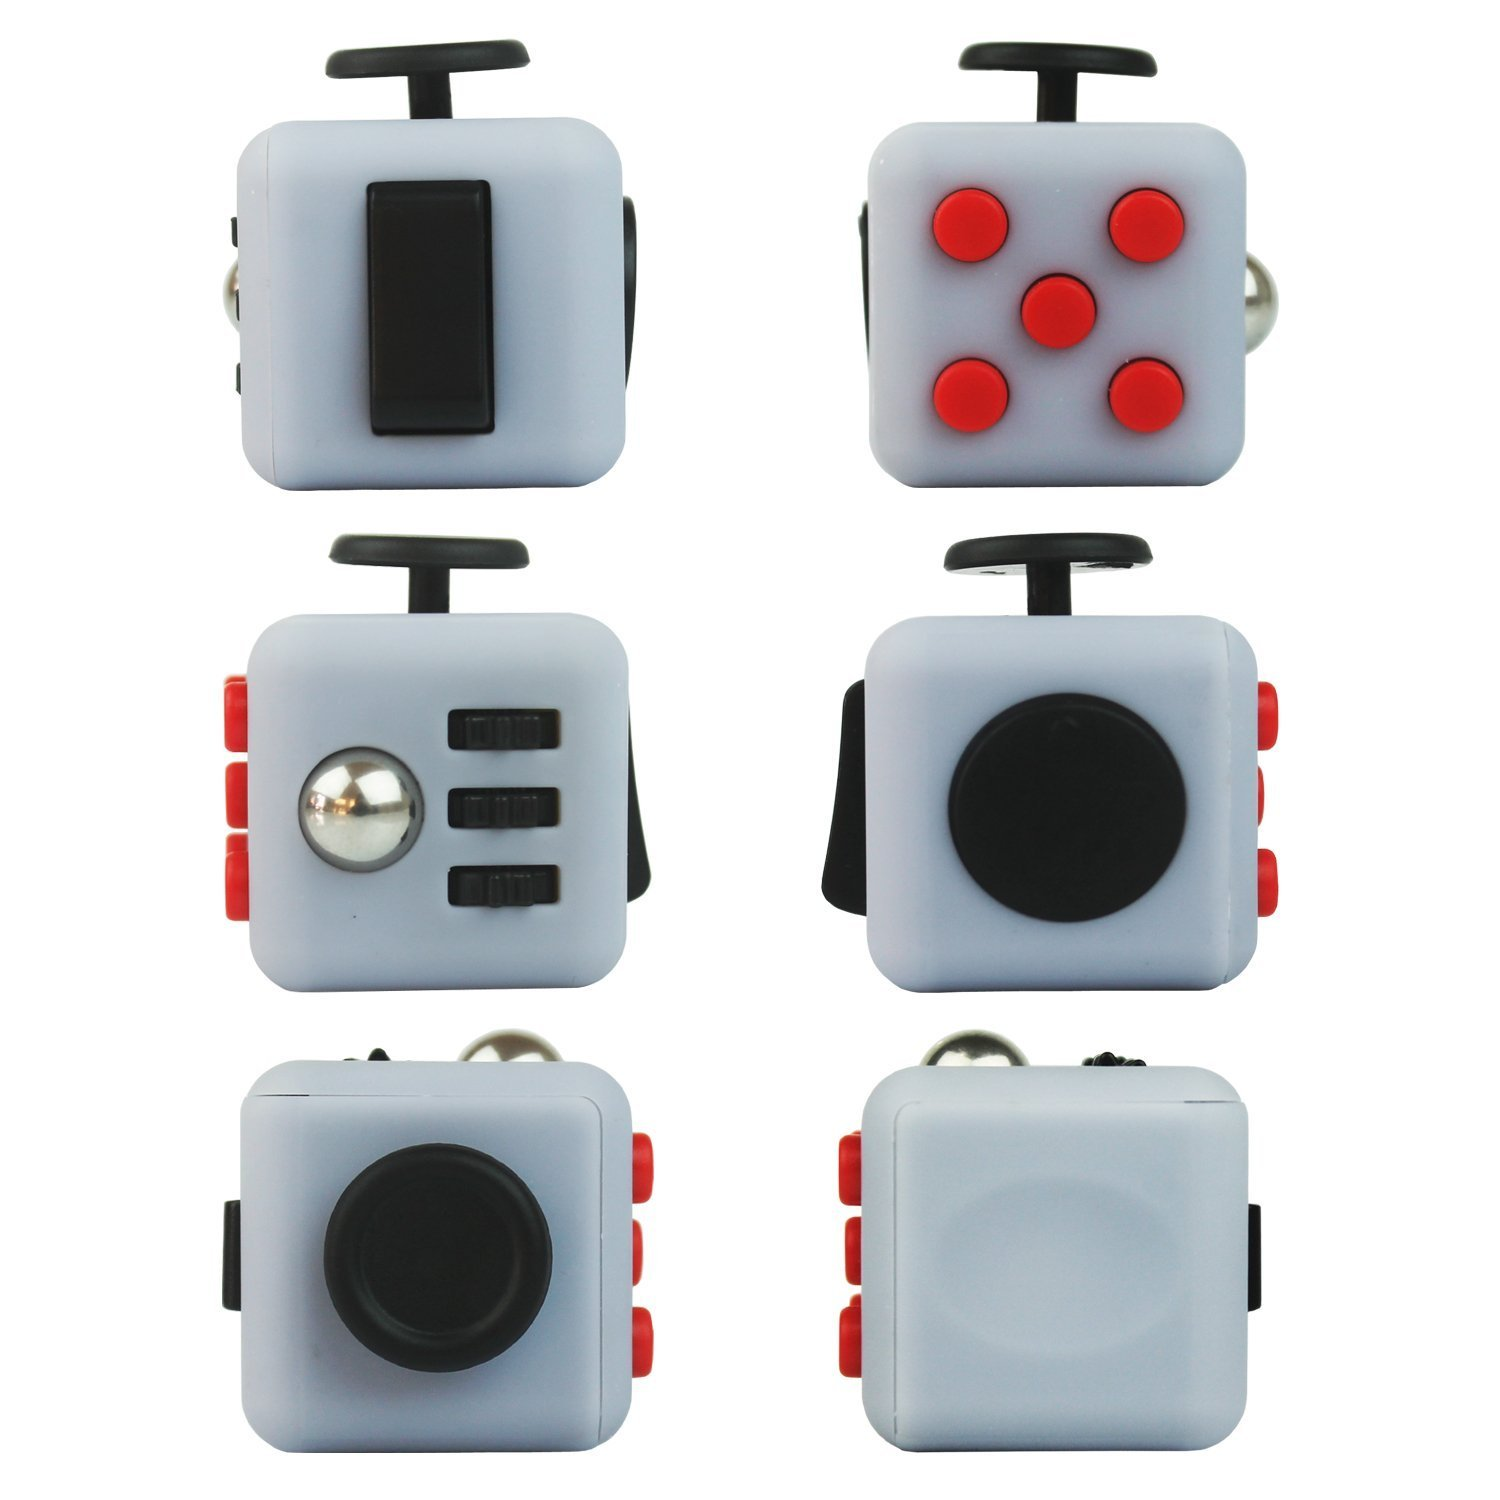 Fidget Cube Reduce Stress Help Focuse Anti-Stress/Anxiety (Gray/Black/Red) Work Class Home)